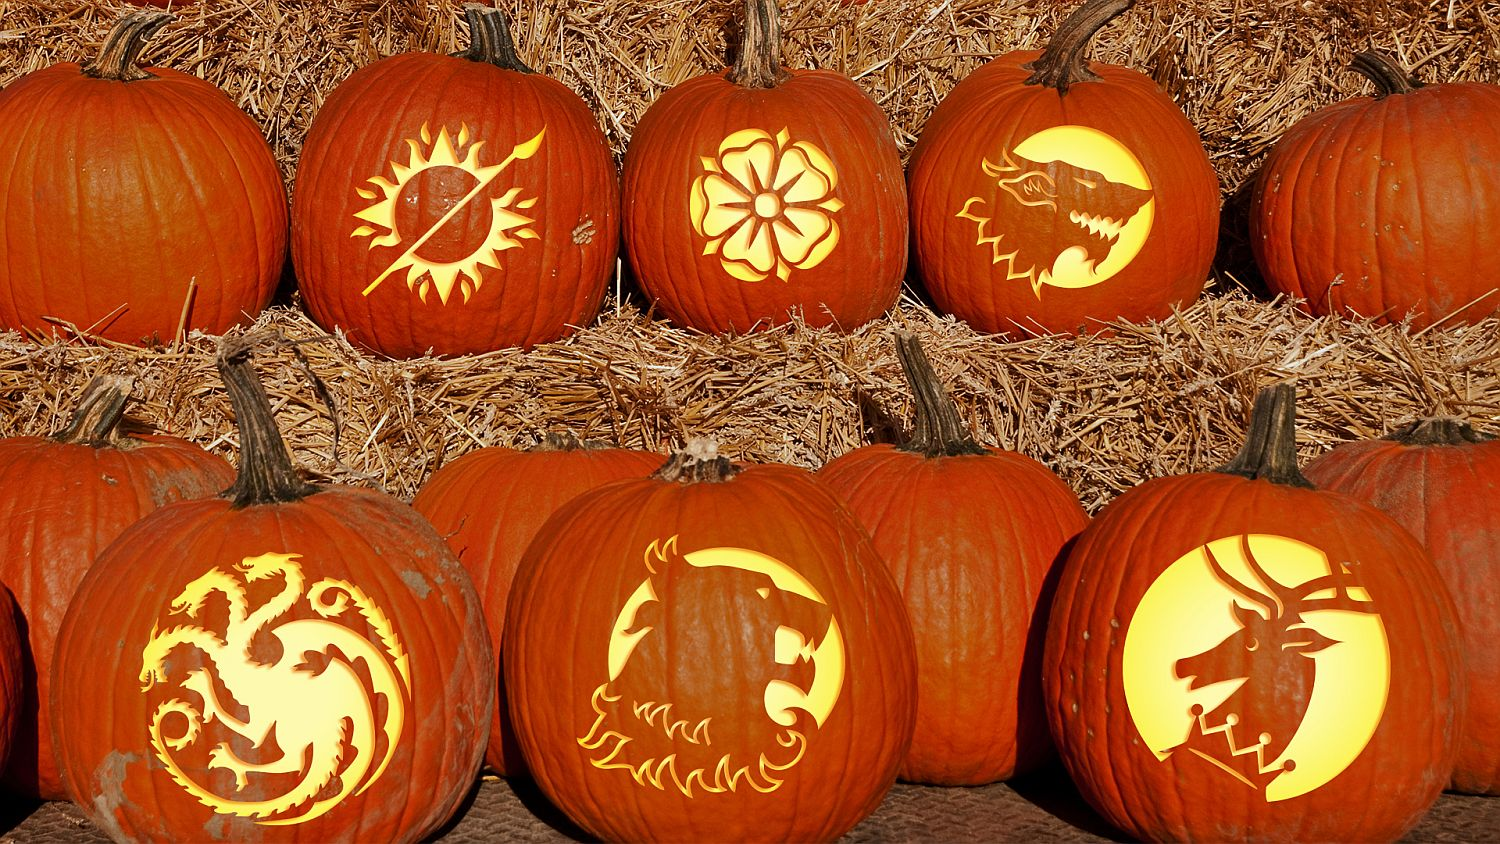 Game of Thrones pumpkin carving ideas [From: Winter is Coming]